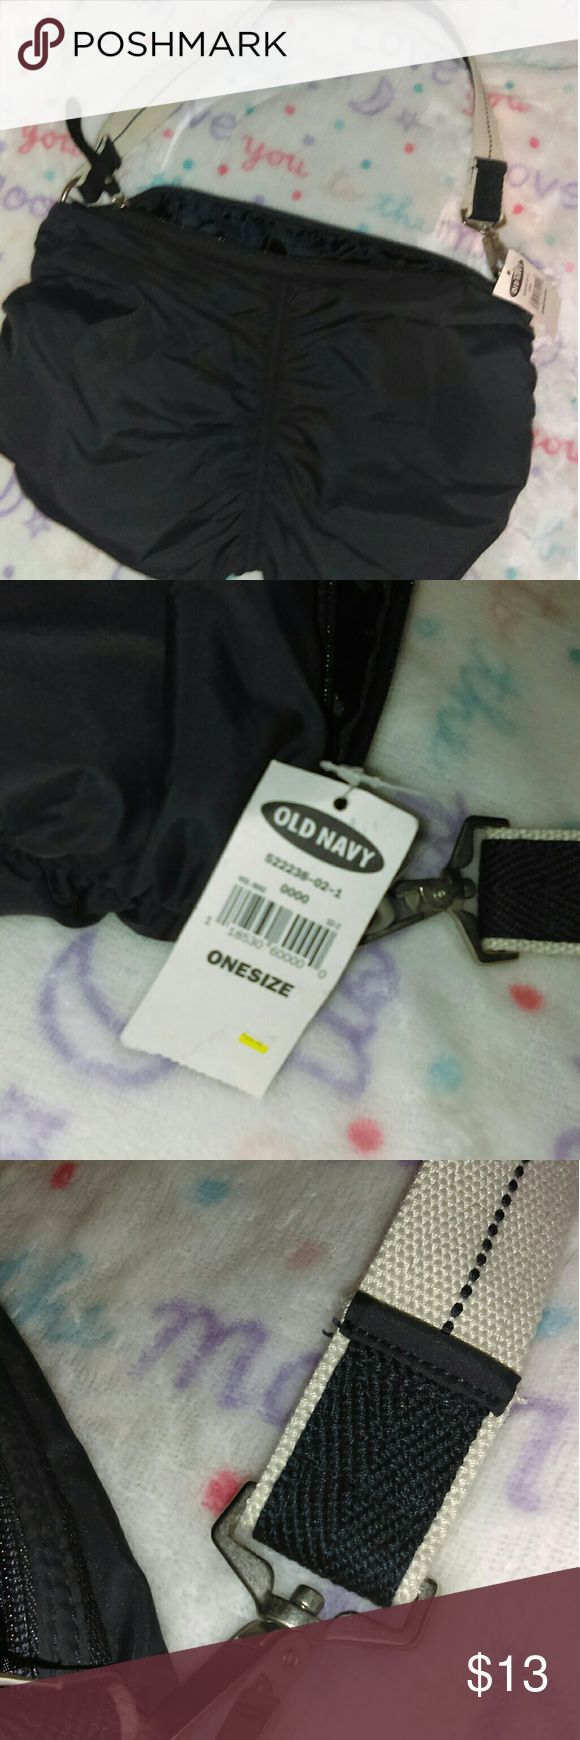 NWT Old Navy Shoulder Bag One pocket on the inside. Any questions please ask. Thanks for viewing. Happy poshing! Old Navy Bags Shoulder Bags